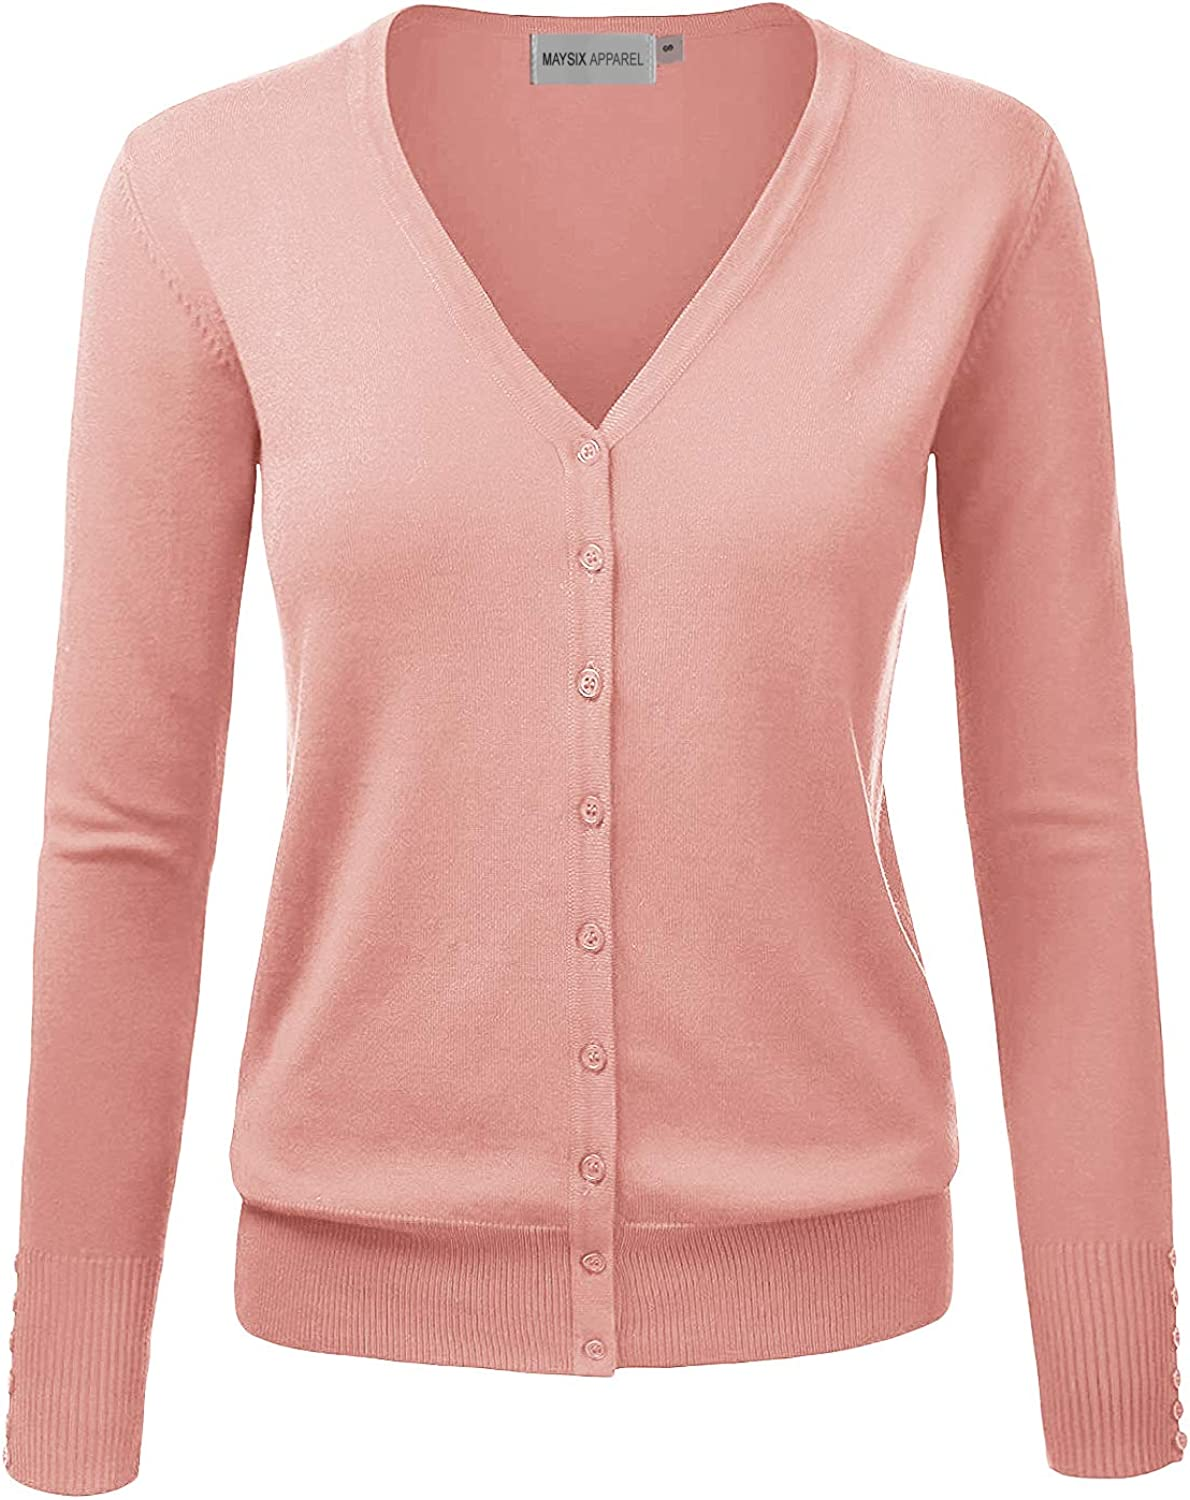 MAYSIX APPAREL Long Sleeve Button Down V-Neck Knit Sweater Cardigan for Women (S-3X 7size)